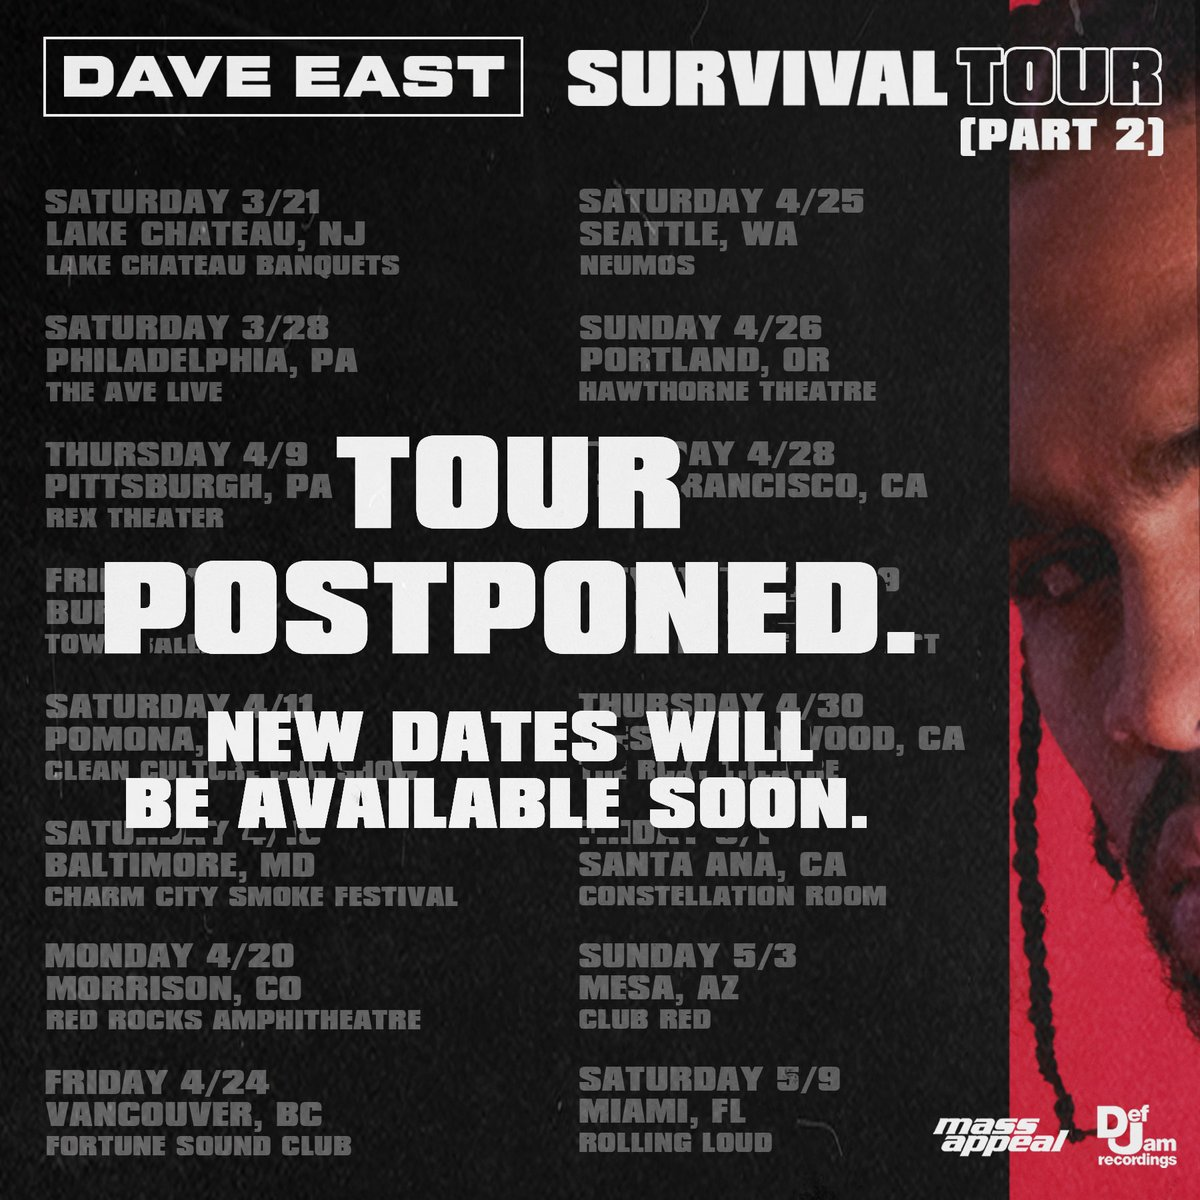 Dave East On Twitter Due To The Mounting Public Health Concerns Re Covid 19 And Circumstances Out Of Our Control We Ll Be Postponing The Tour To A Later Time The New Dates Will